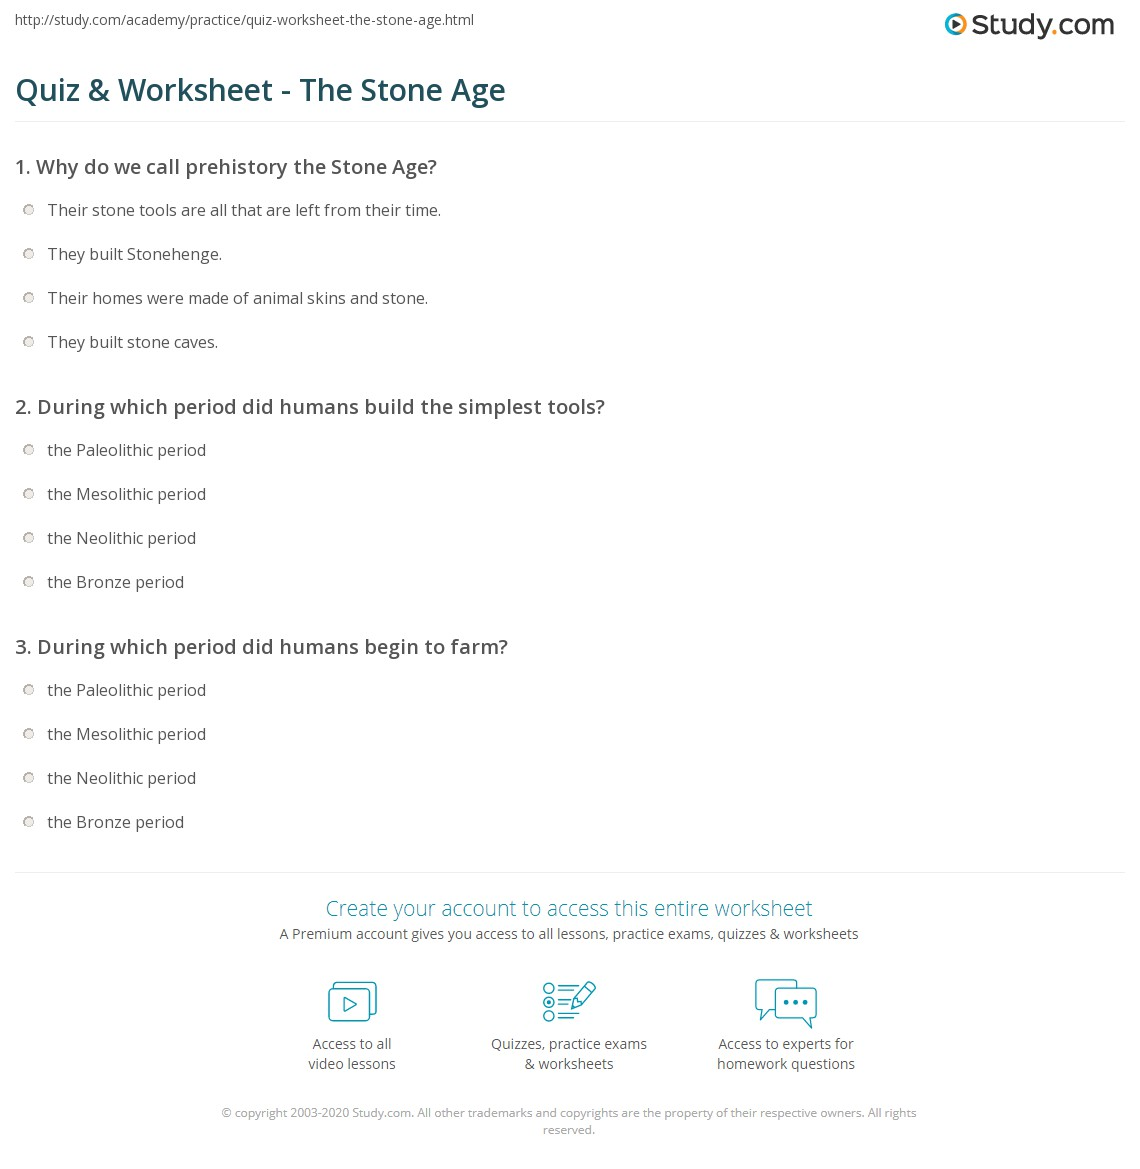 Quiz & Worksheet - The Stone Age | Study.com